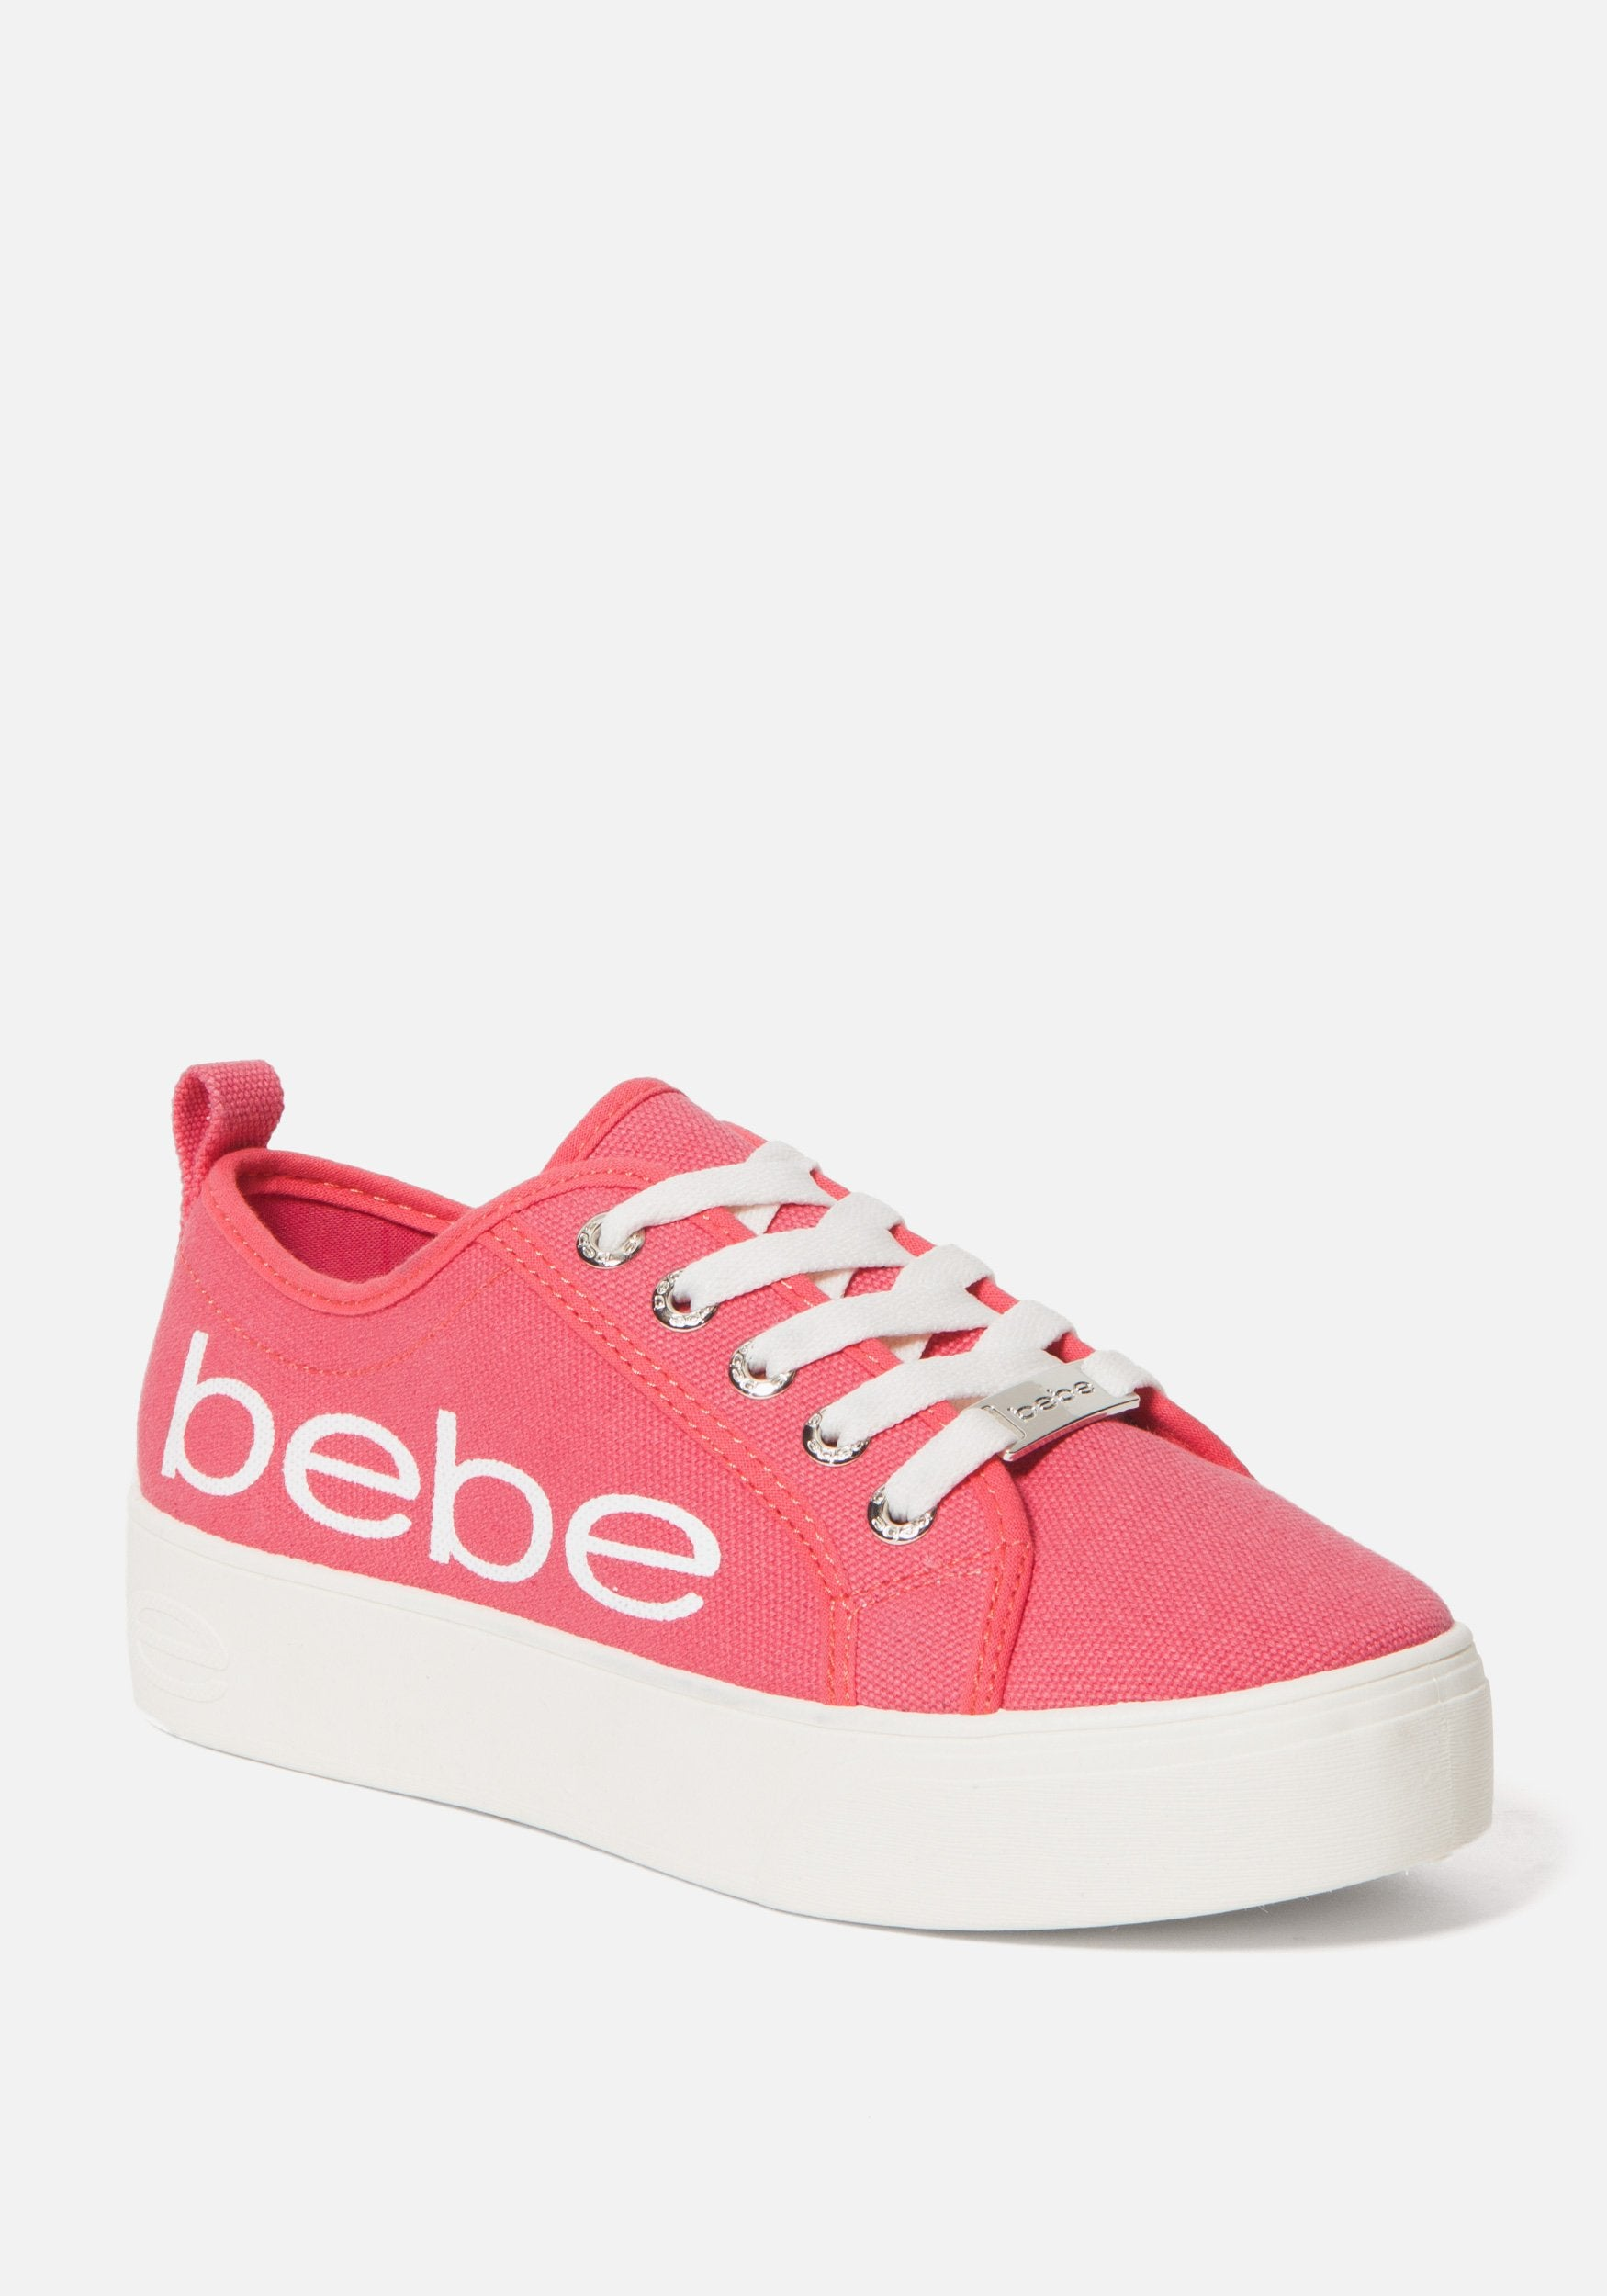 Bebe Women's Destini Platform Sneakers, Size 6 in CORAL CANVAS Synthetic